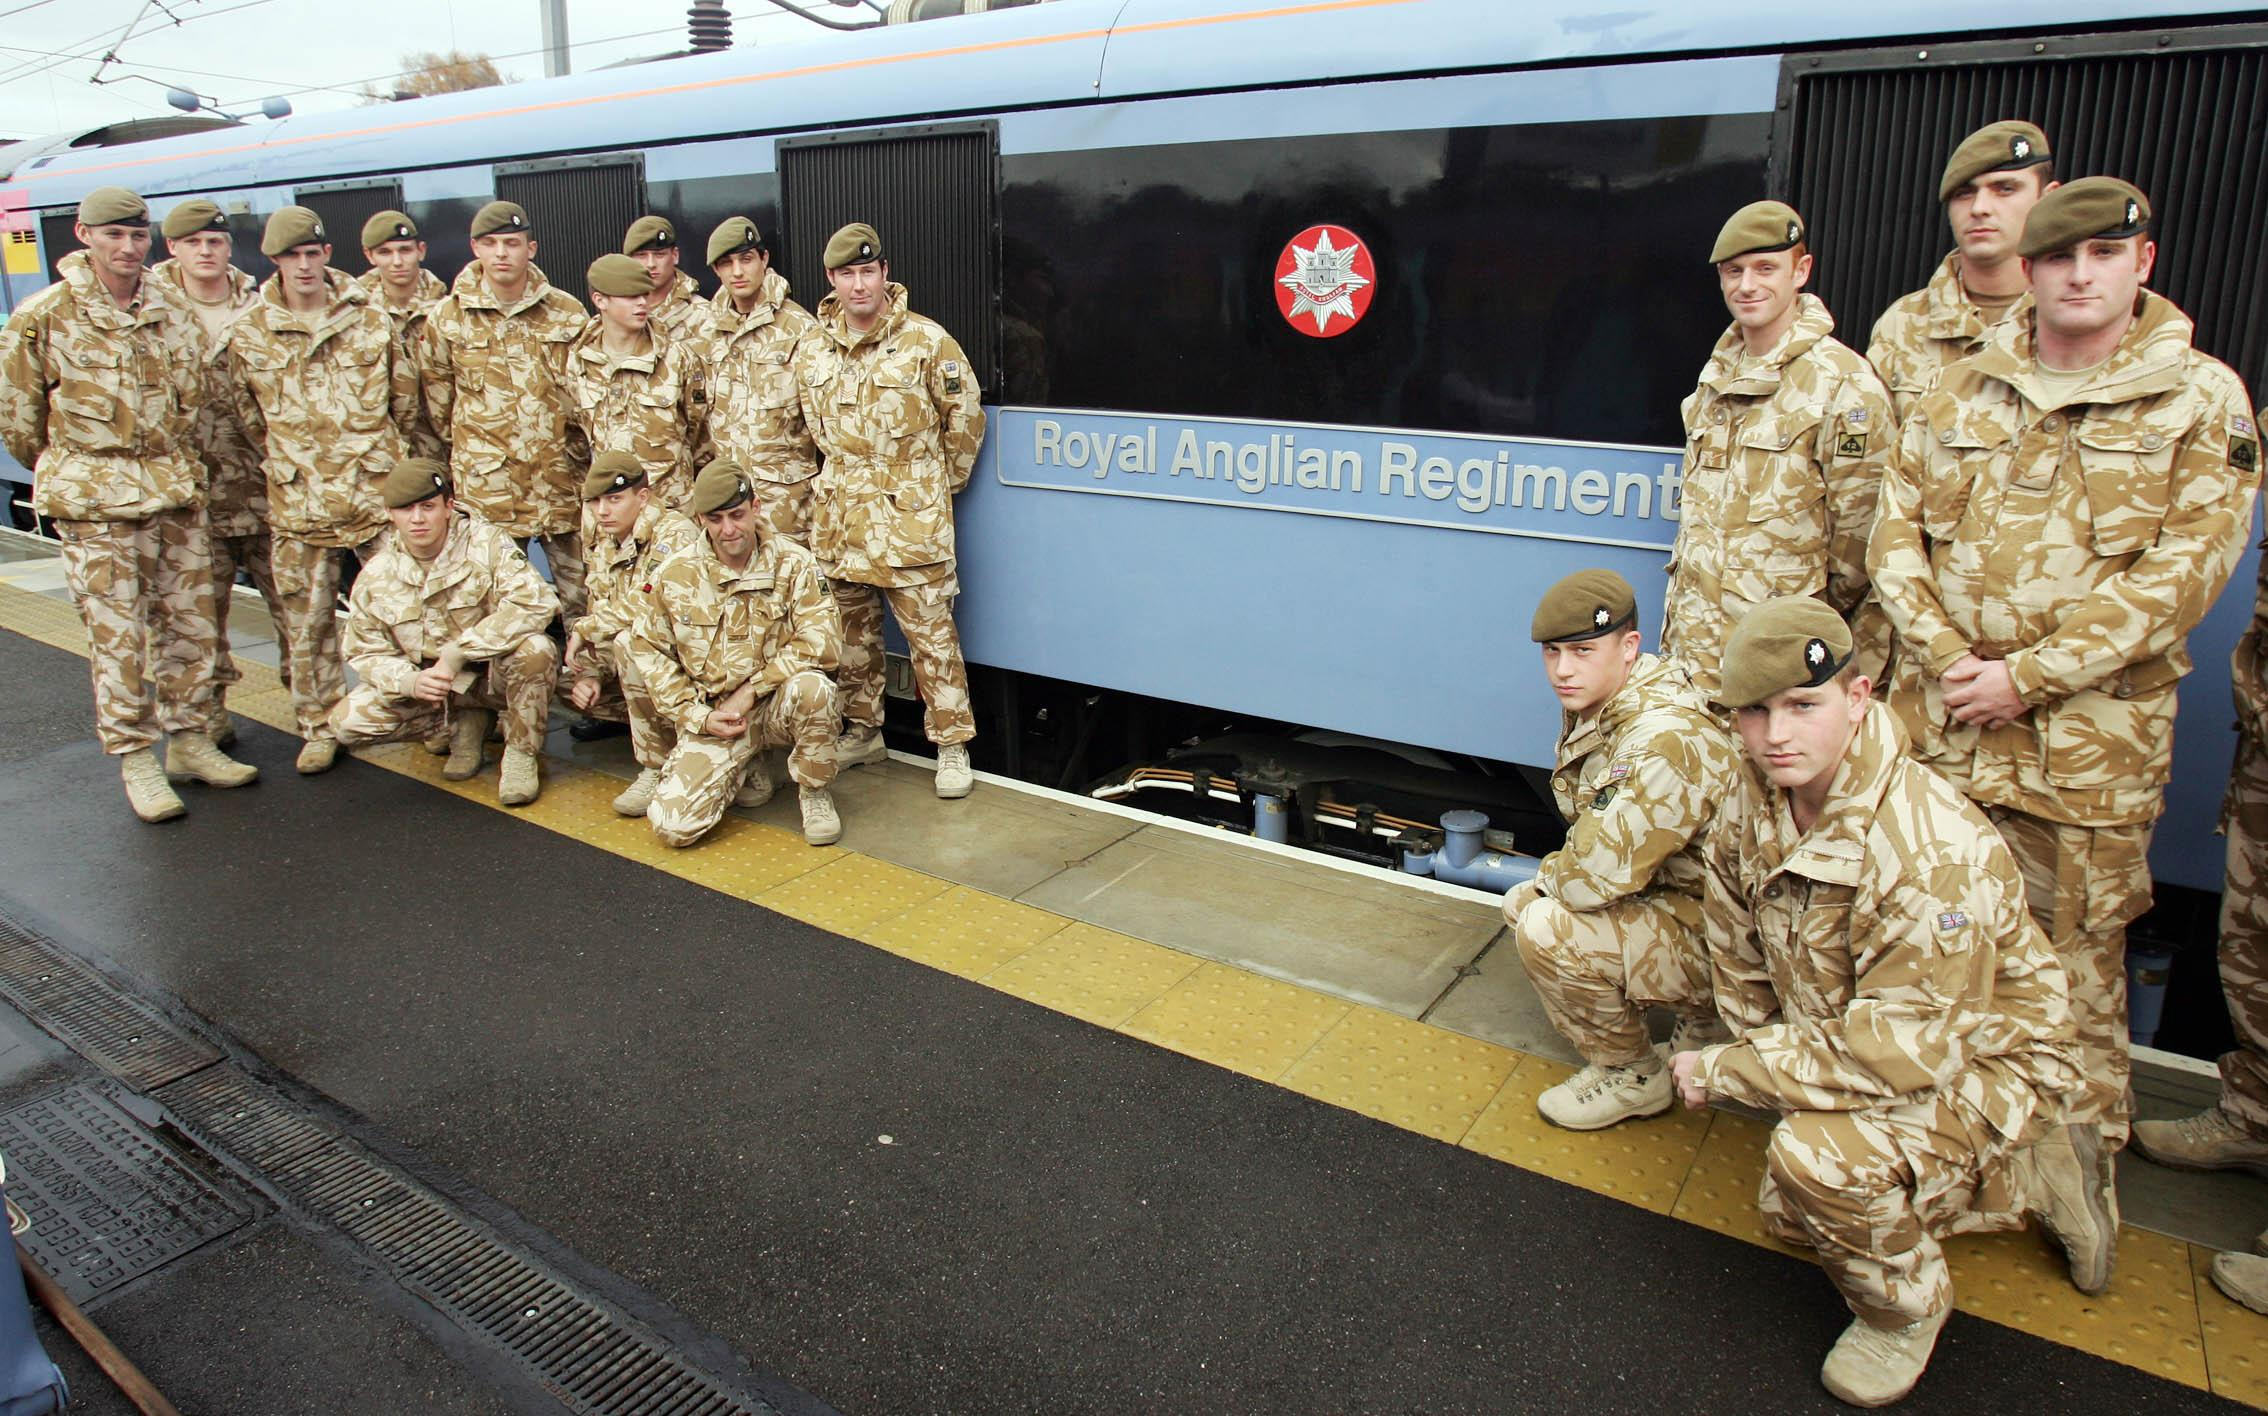 Train named after Royal Anglian Regiment